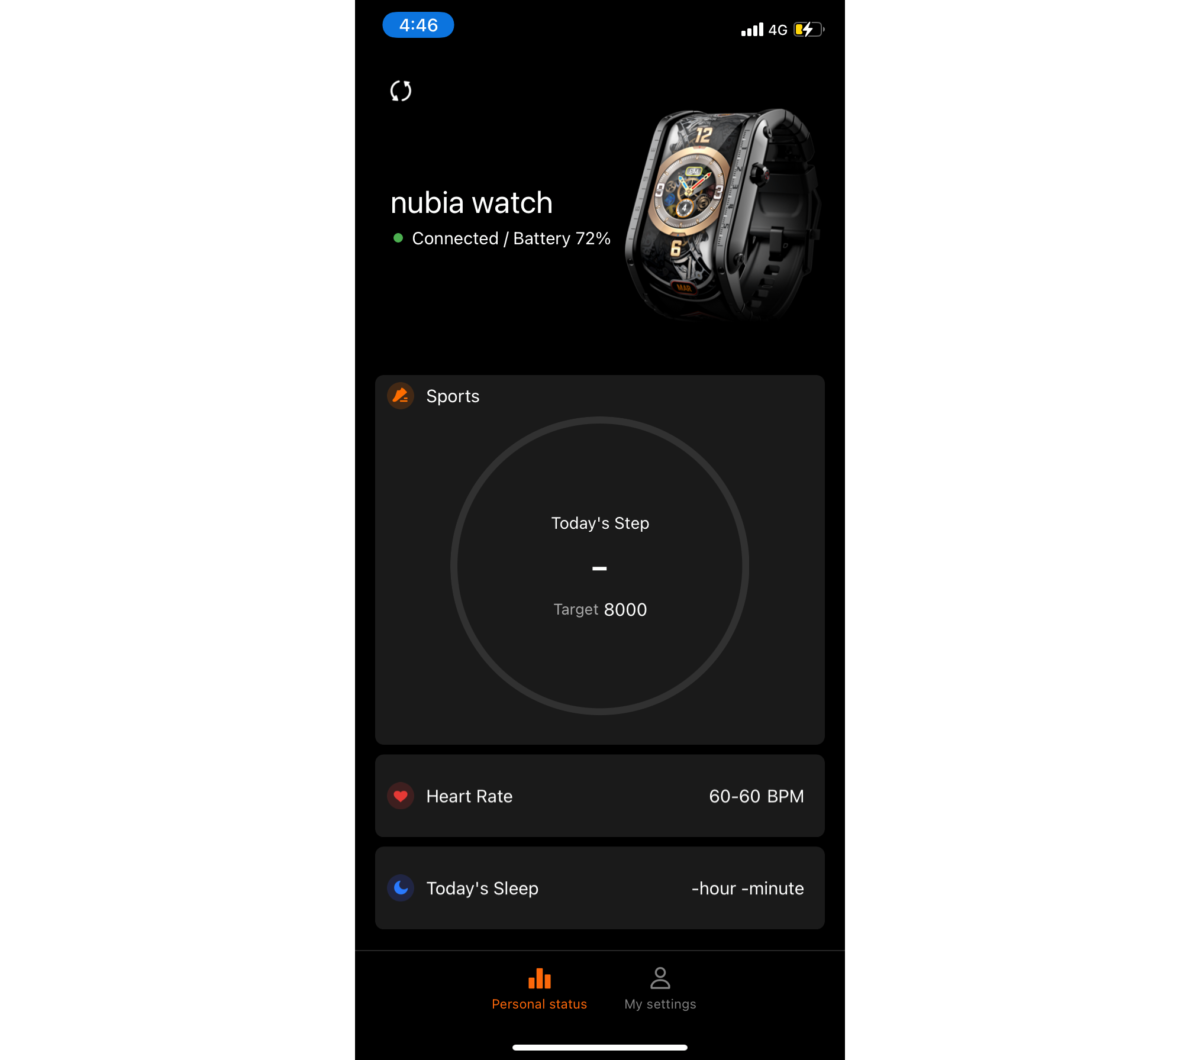 Nubia Watch UI